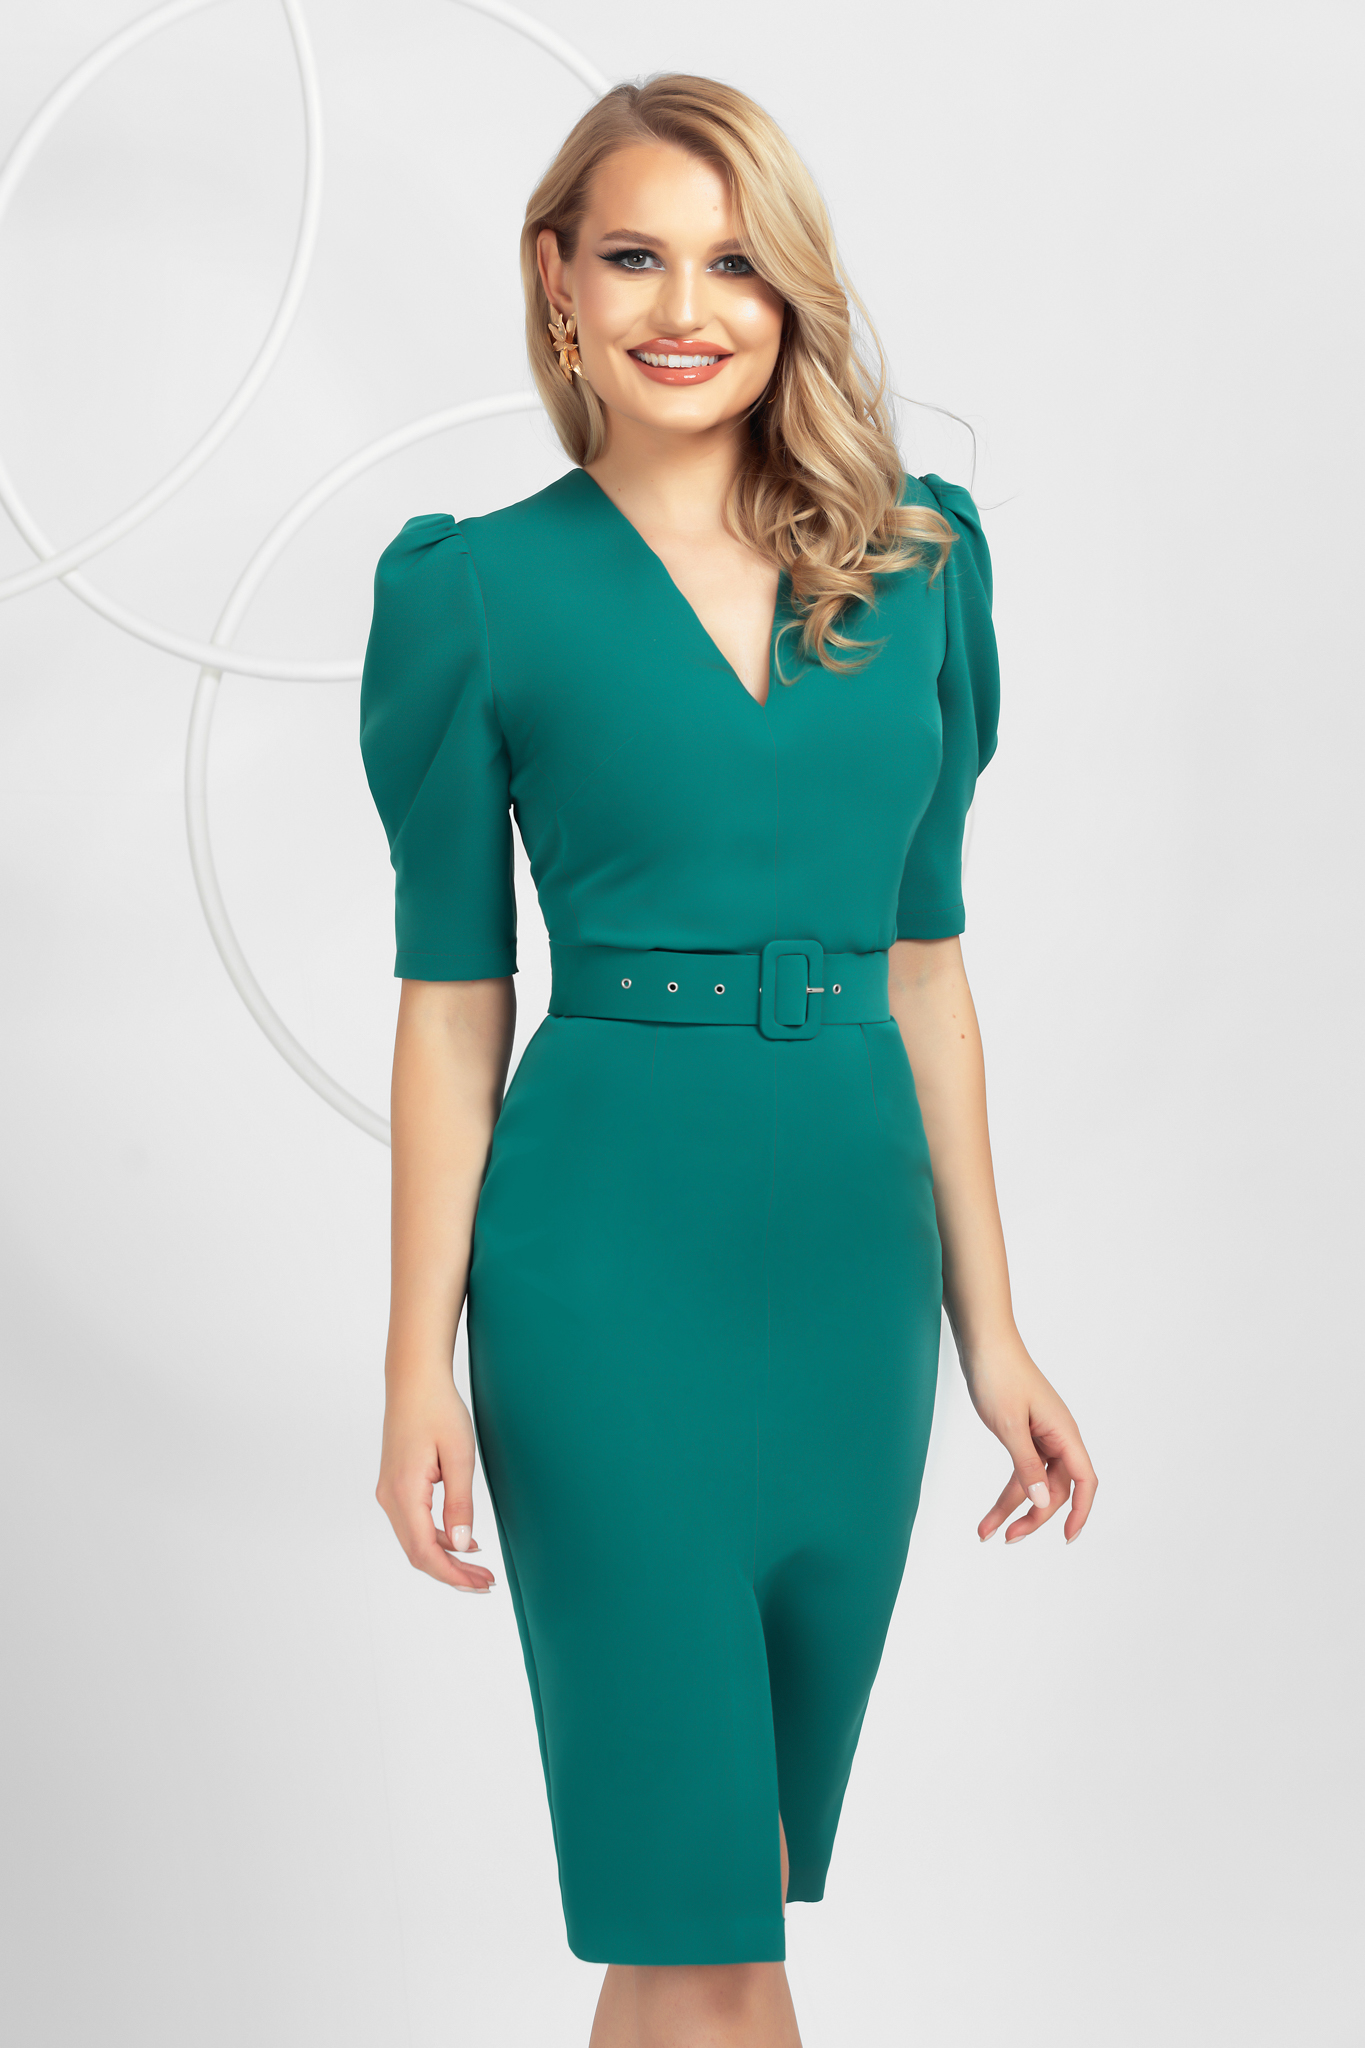 Green pencil midi dress top wrinkled sleeves frontal slit